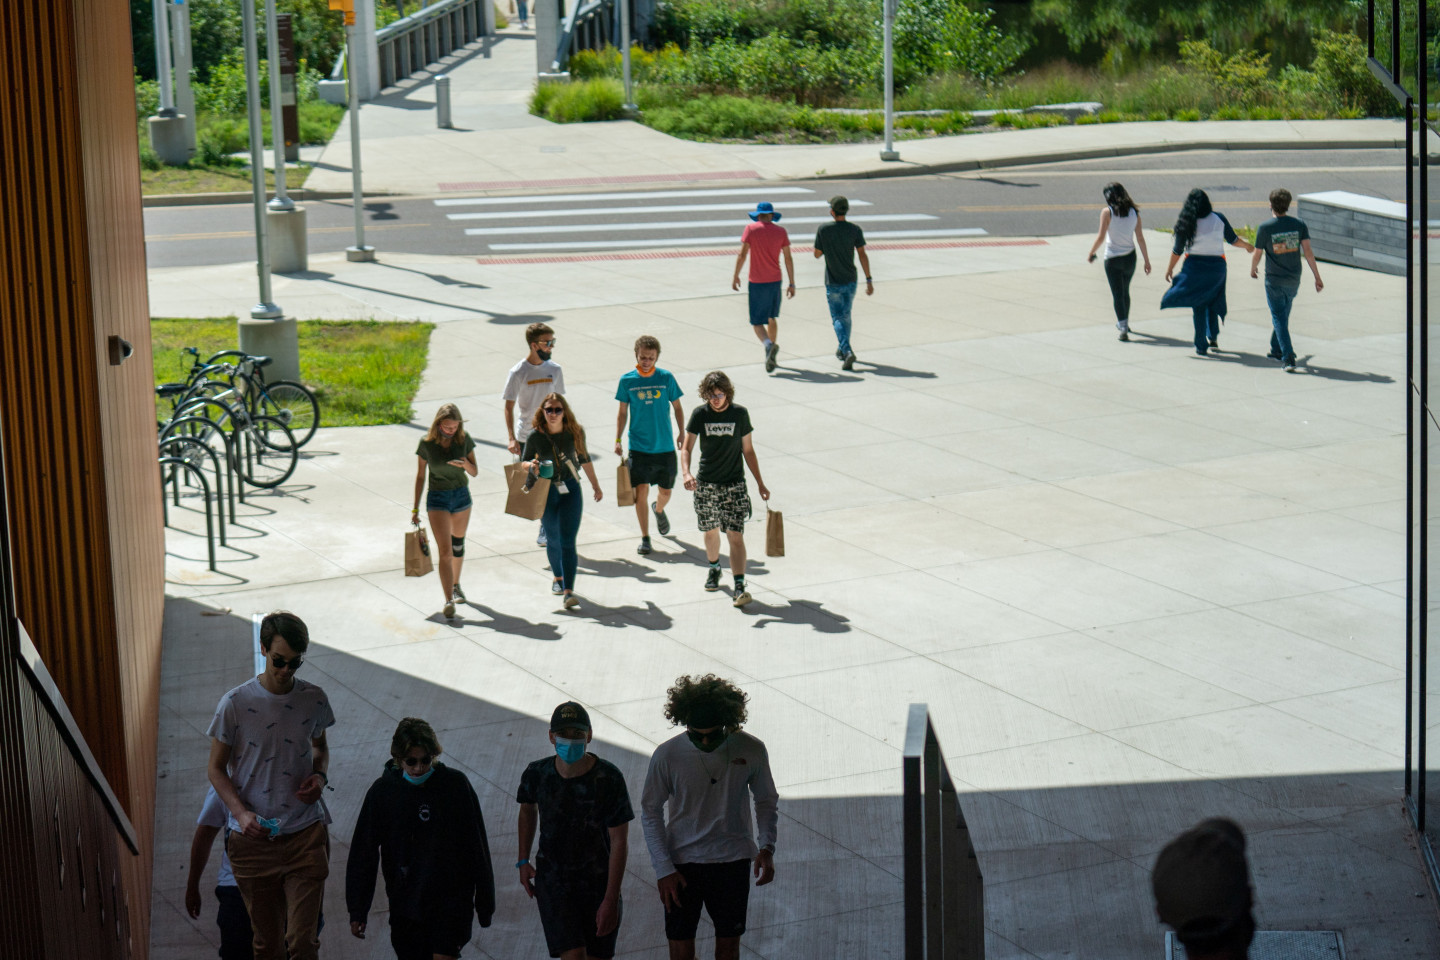 Students walking on a patio and up steps.